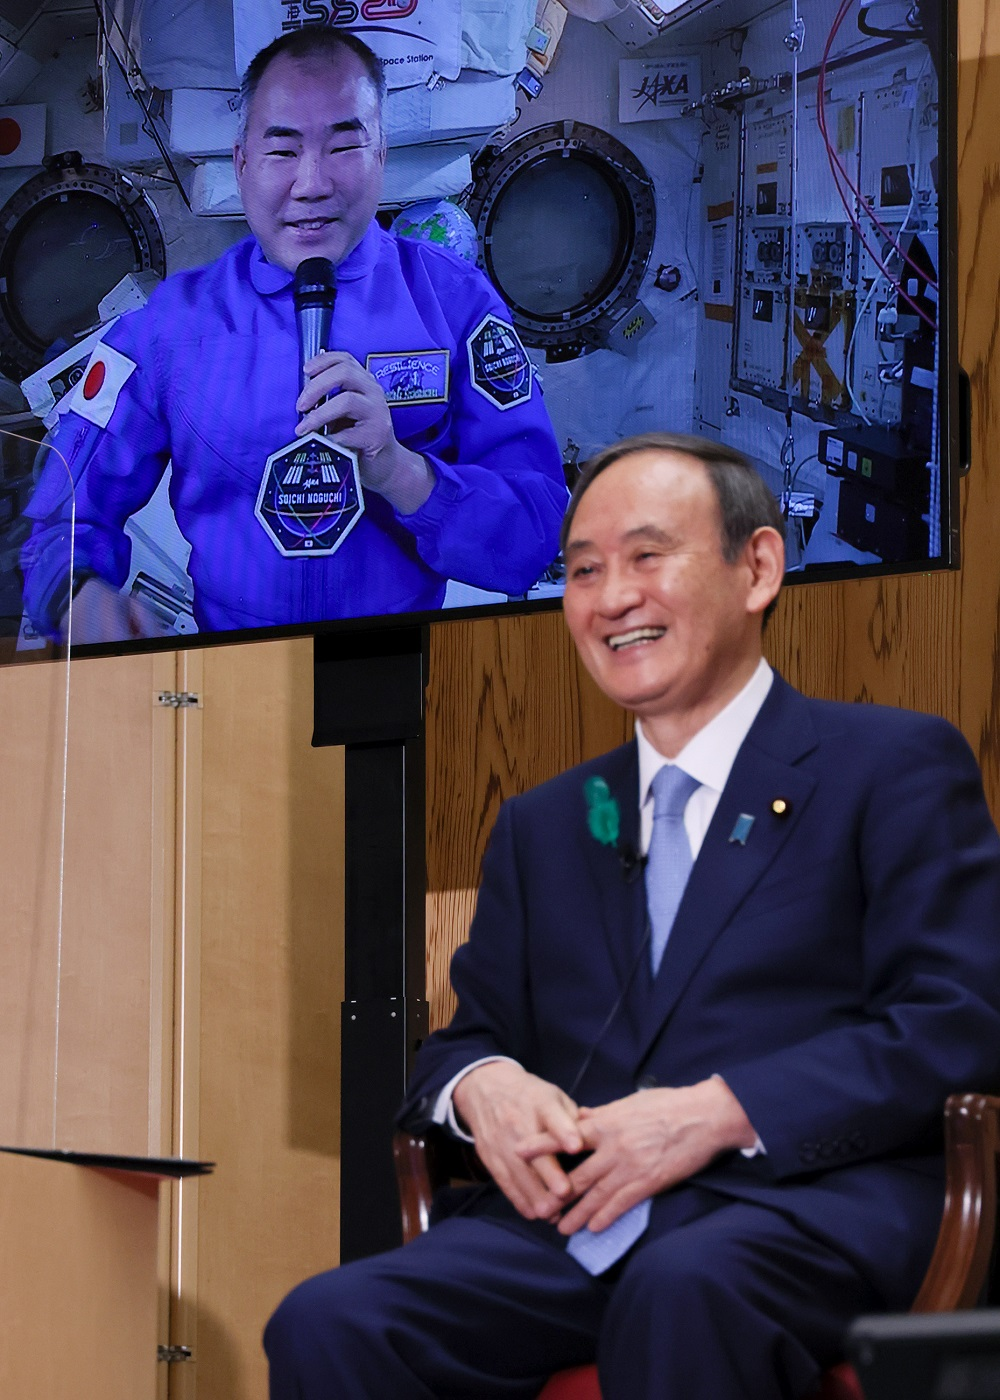 Photograph of the Prime Minister conversing with Astronaut NOGUCHI (3)